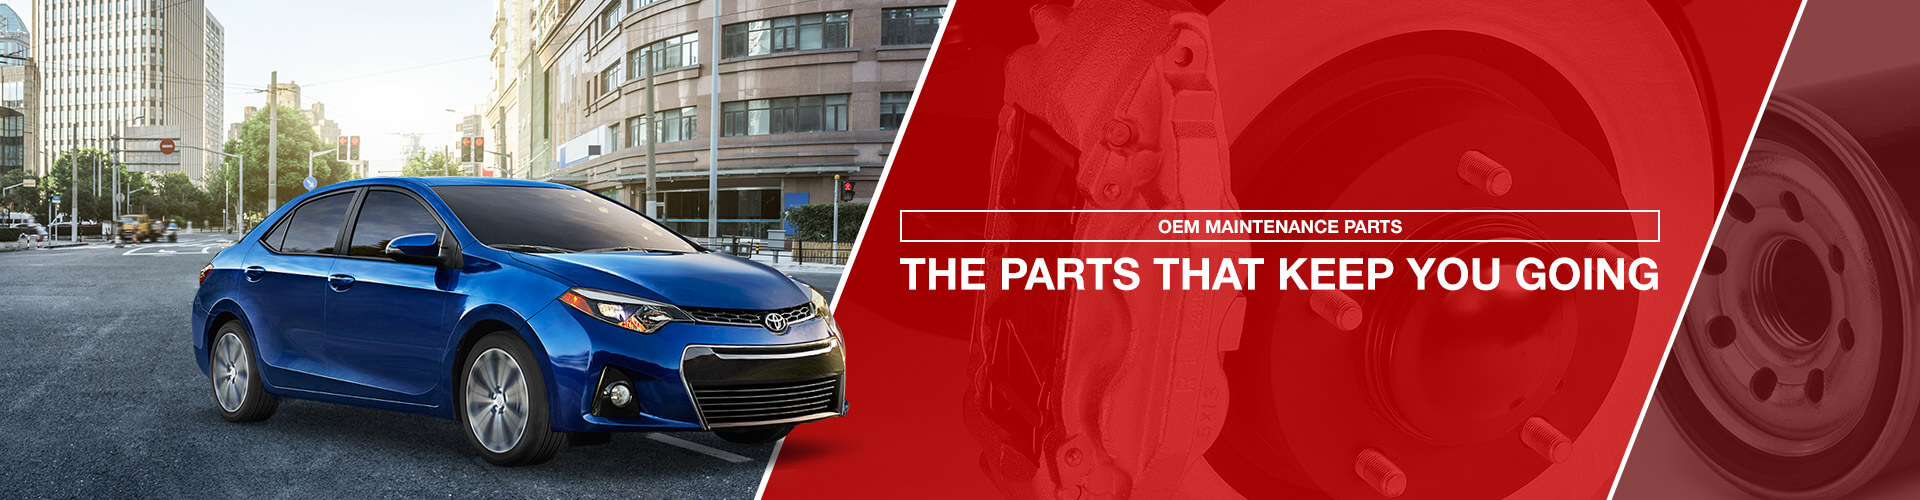 Toyota Maintenance Parts